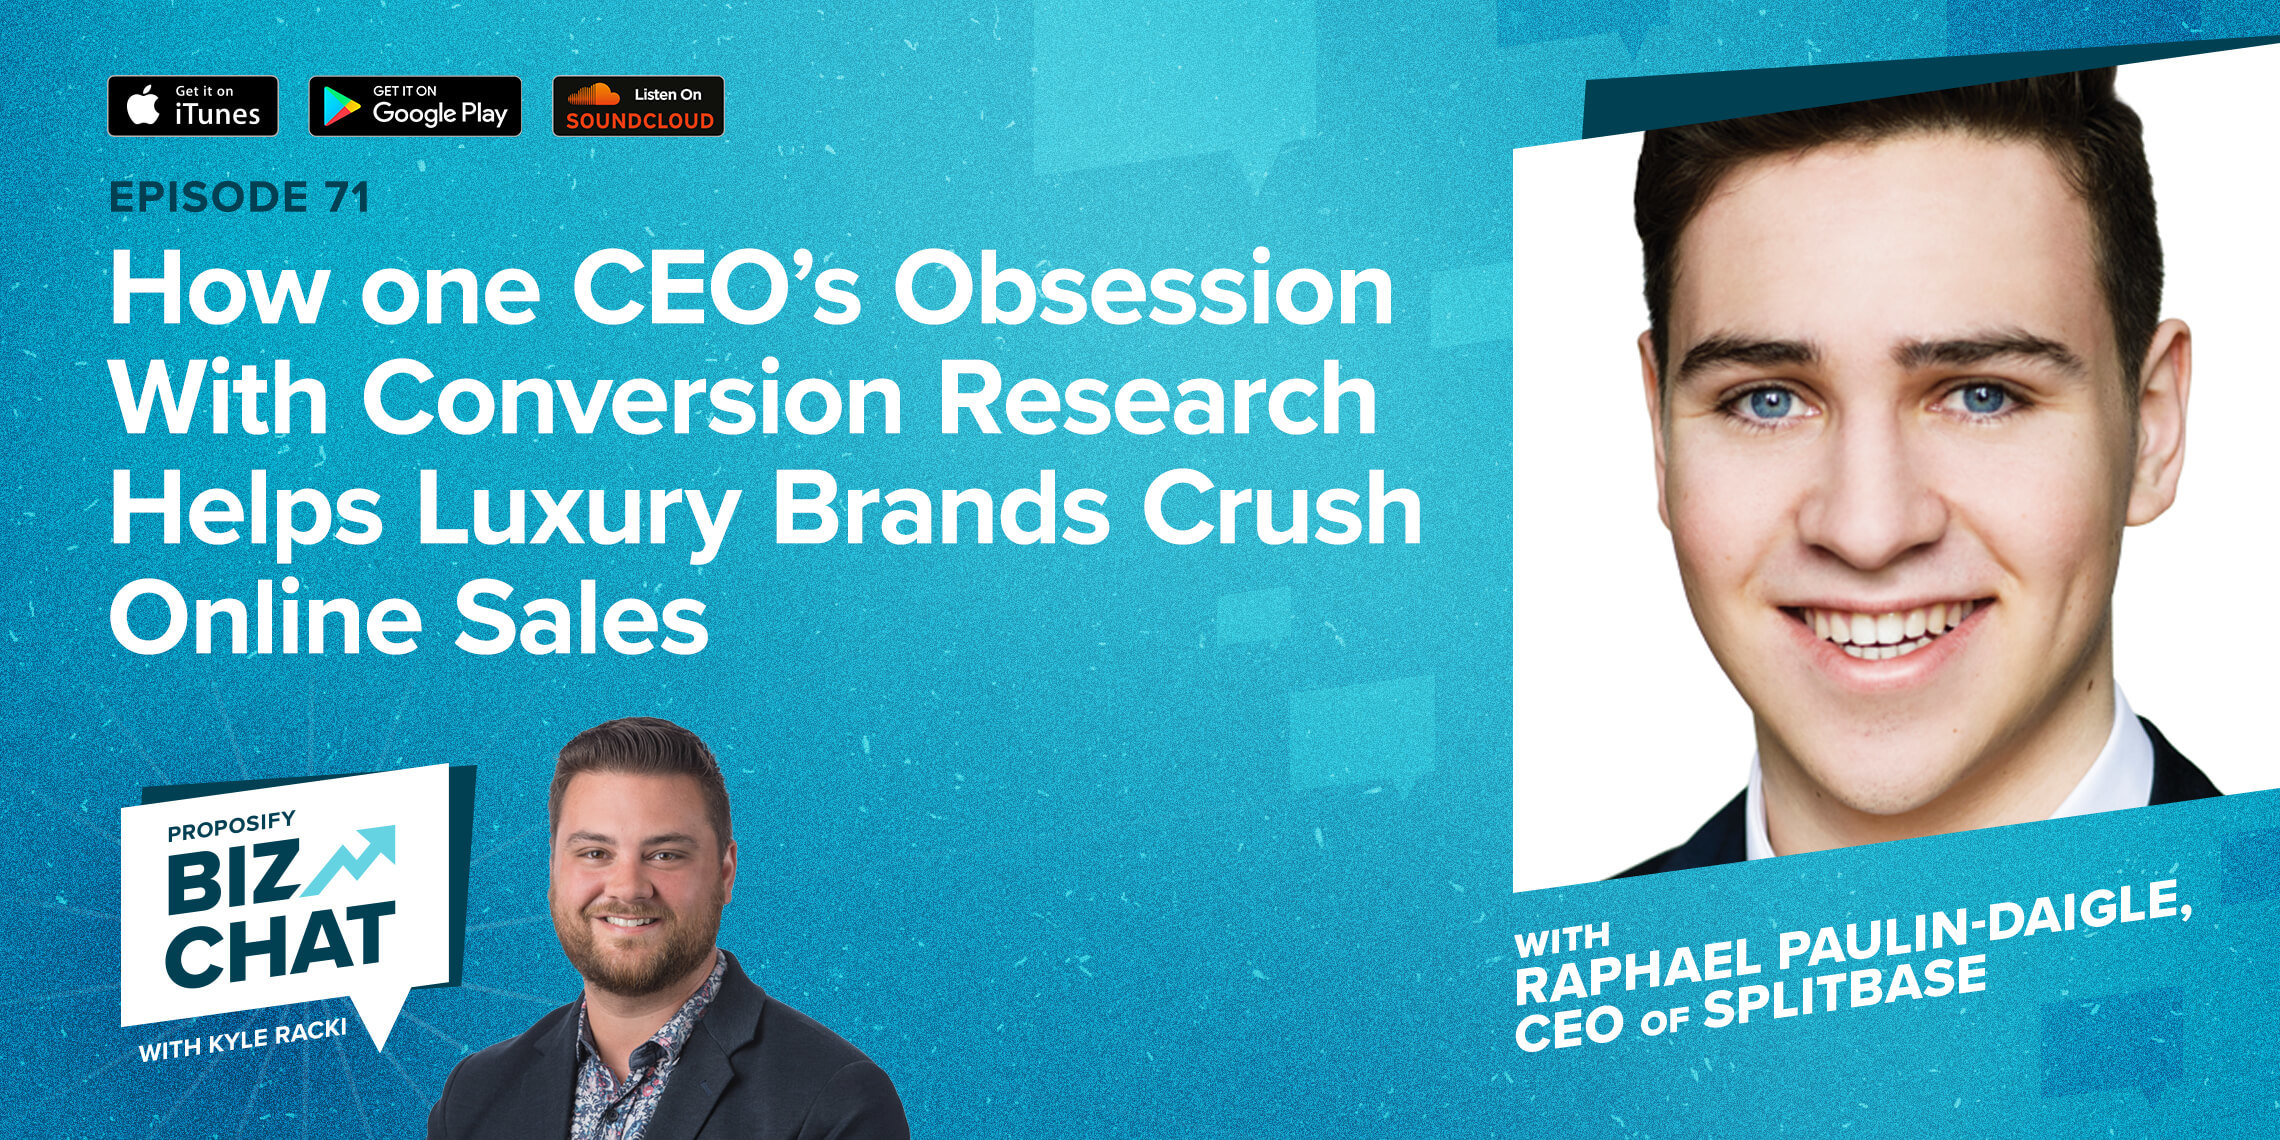 How One CEO's Obsession With Conversion Research Helps Luxury Brands Crush Online Sales